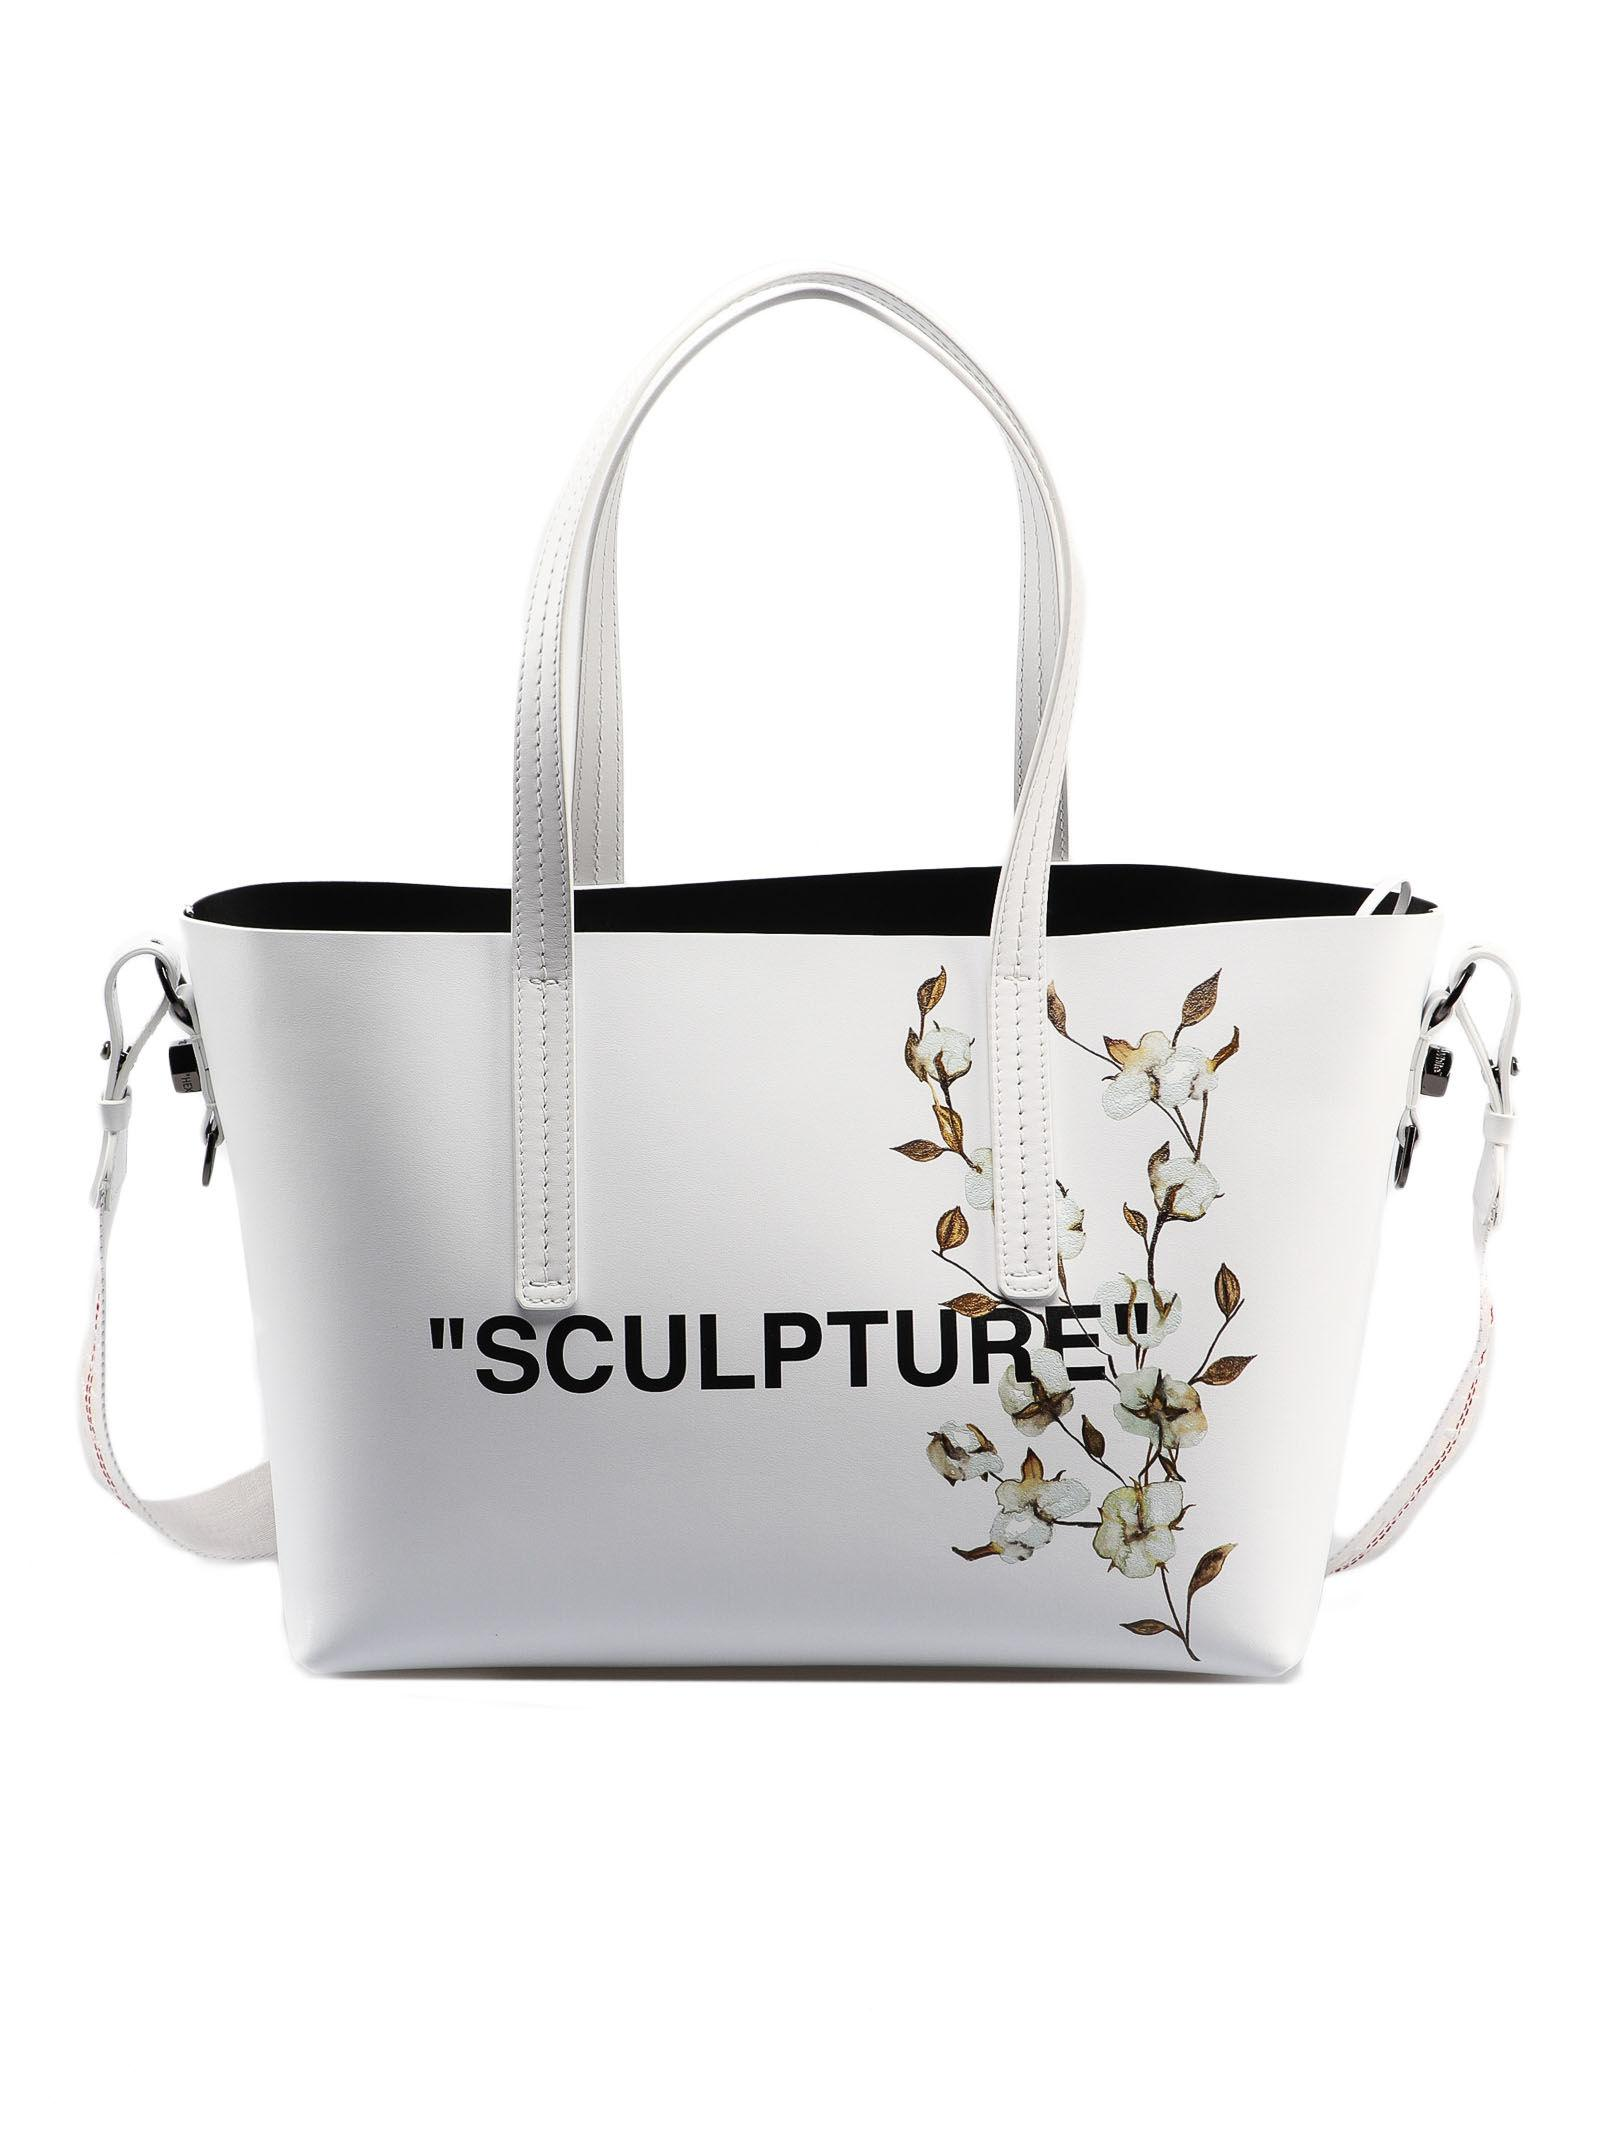 036b5be05 Off-White c/o Virgil Abloh Cotton Flower Shopper in White - Save 20 ...